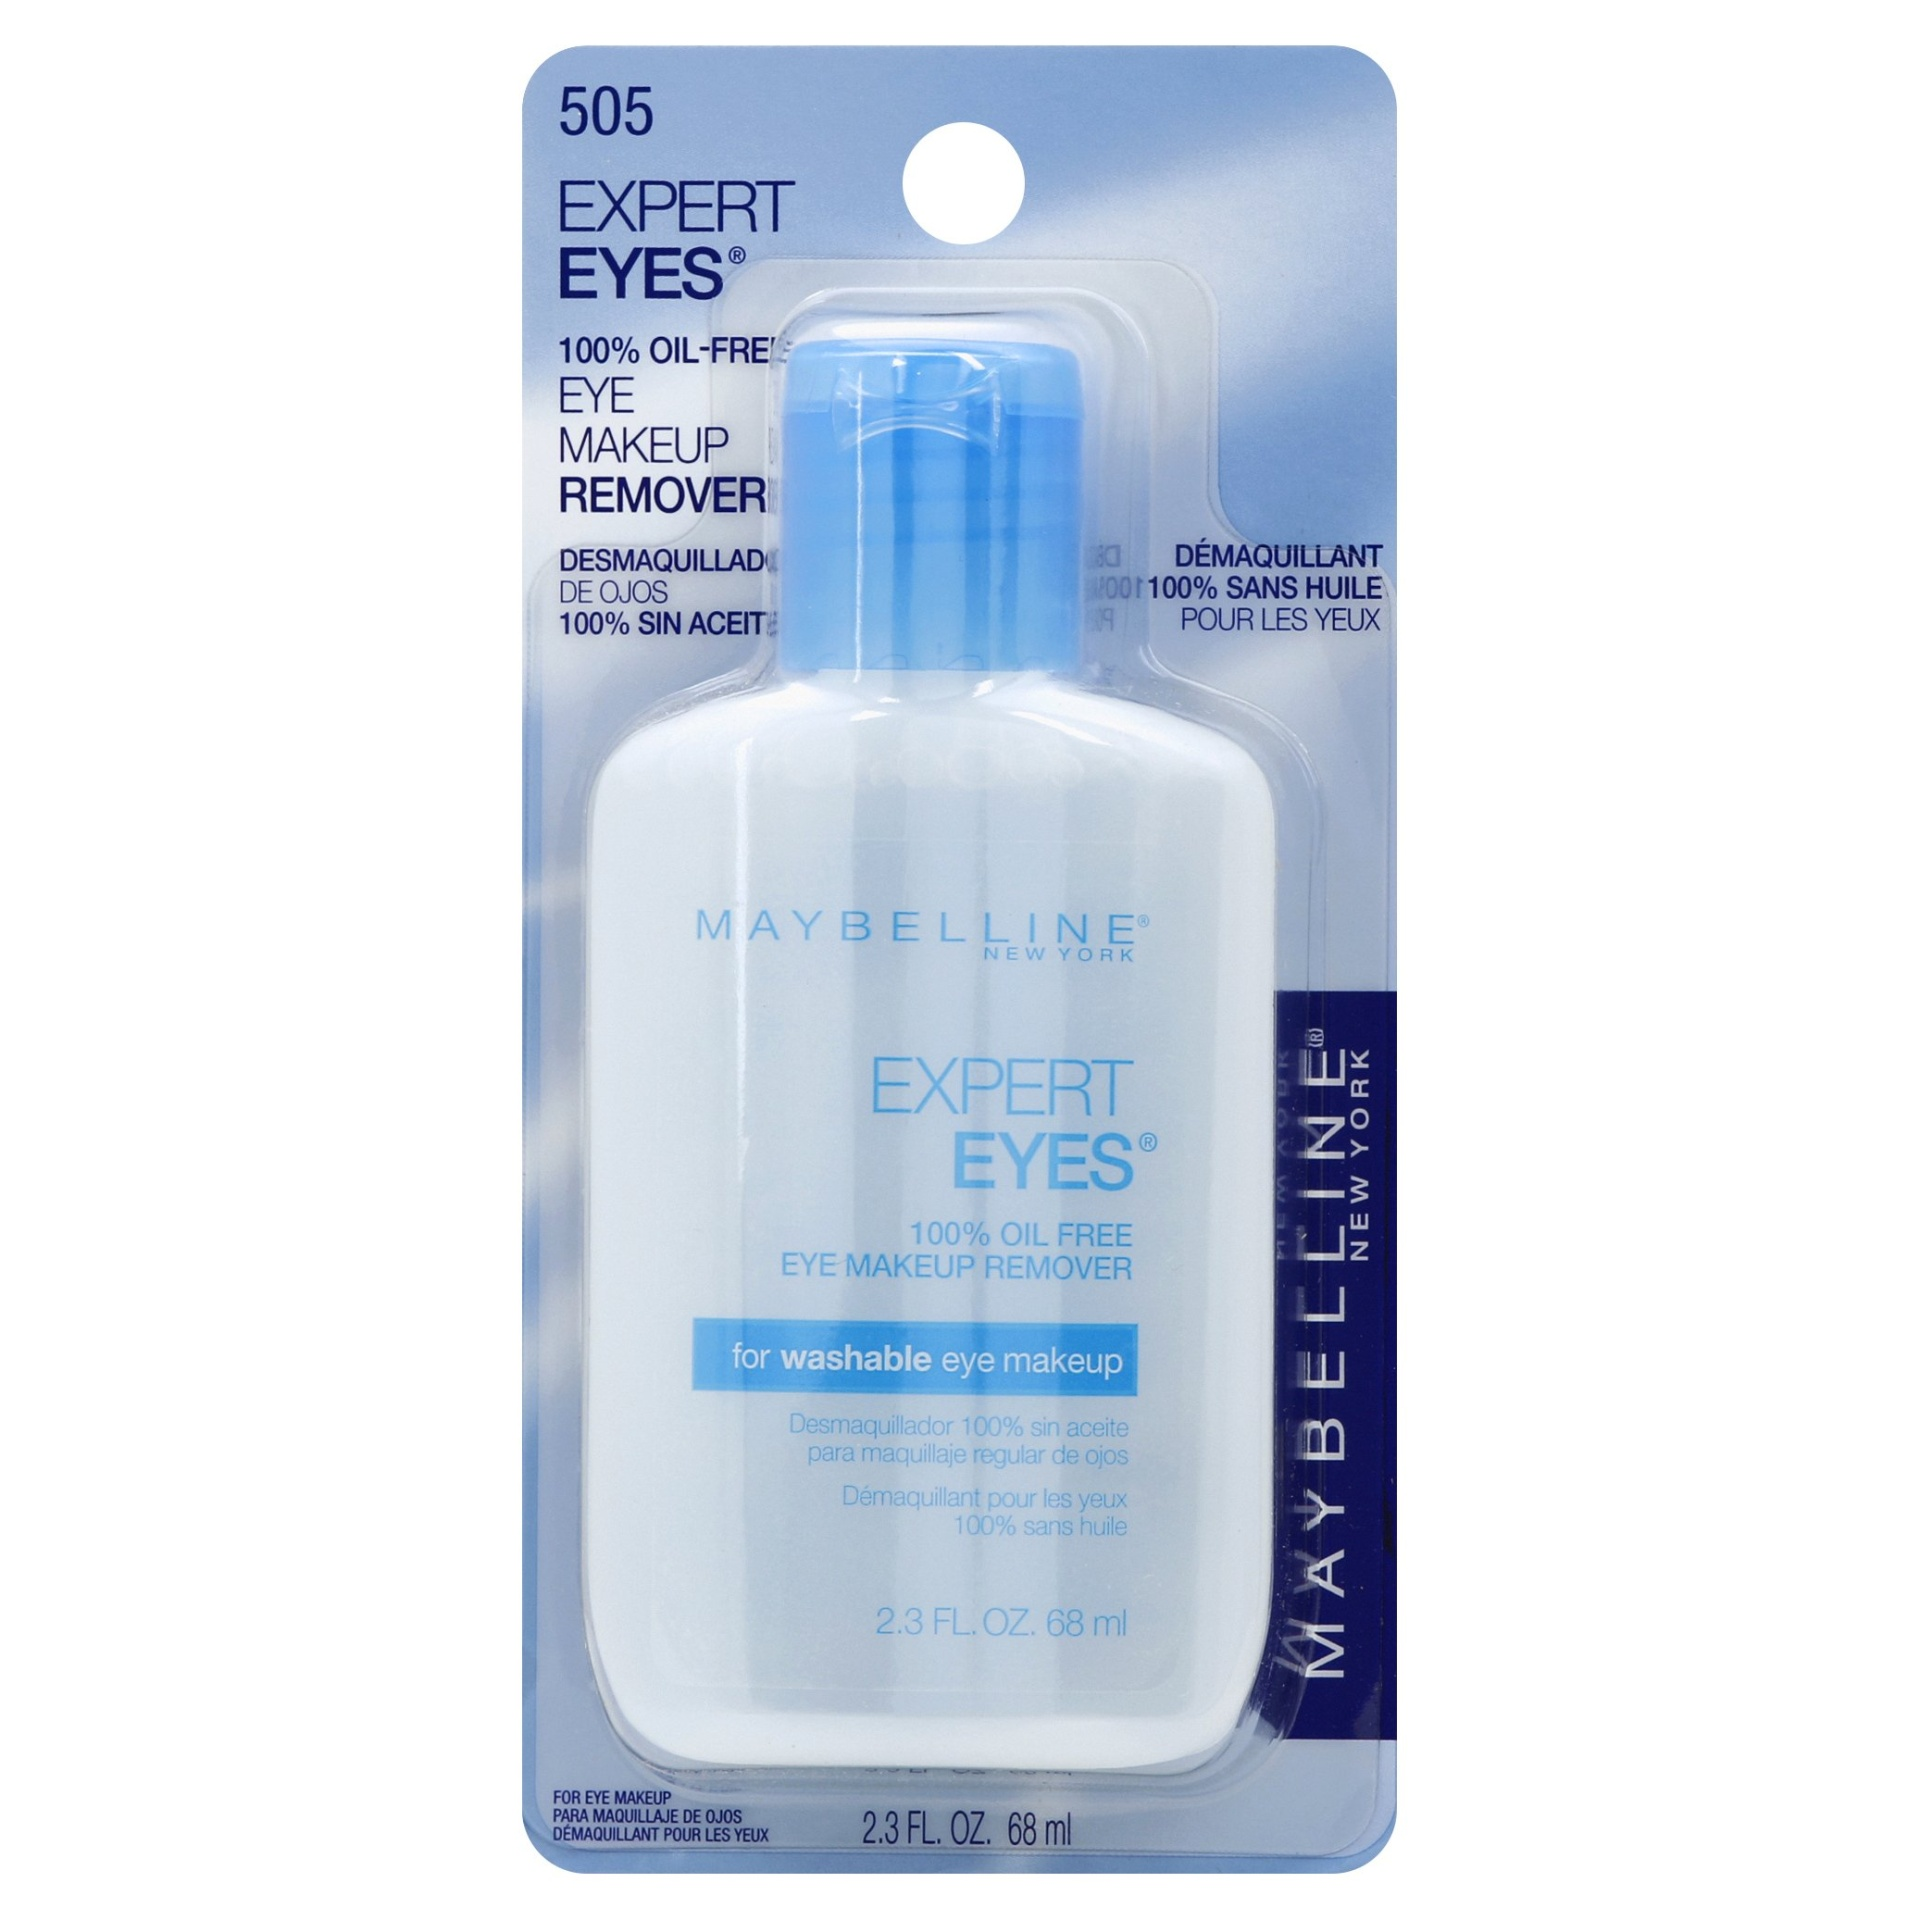 slide 1 of 5, Maybelline Expert Eyes 100% Oil Free Makeup Remover,